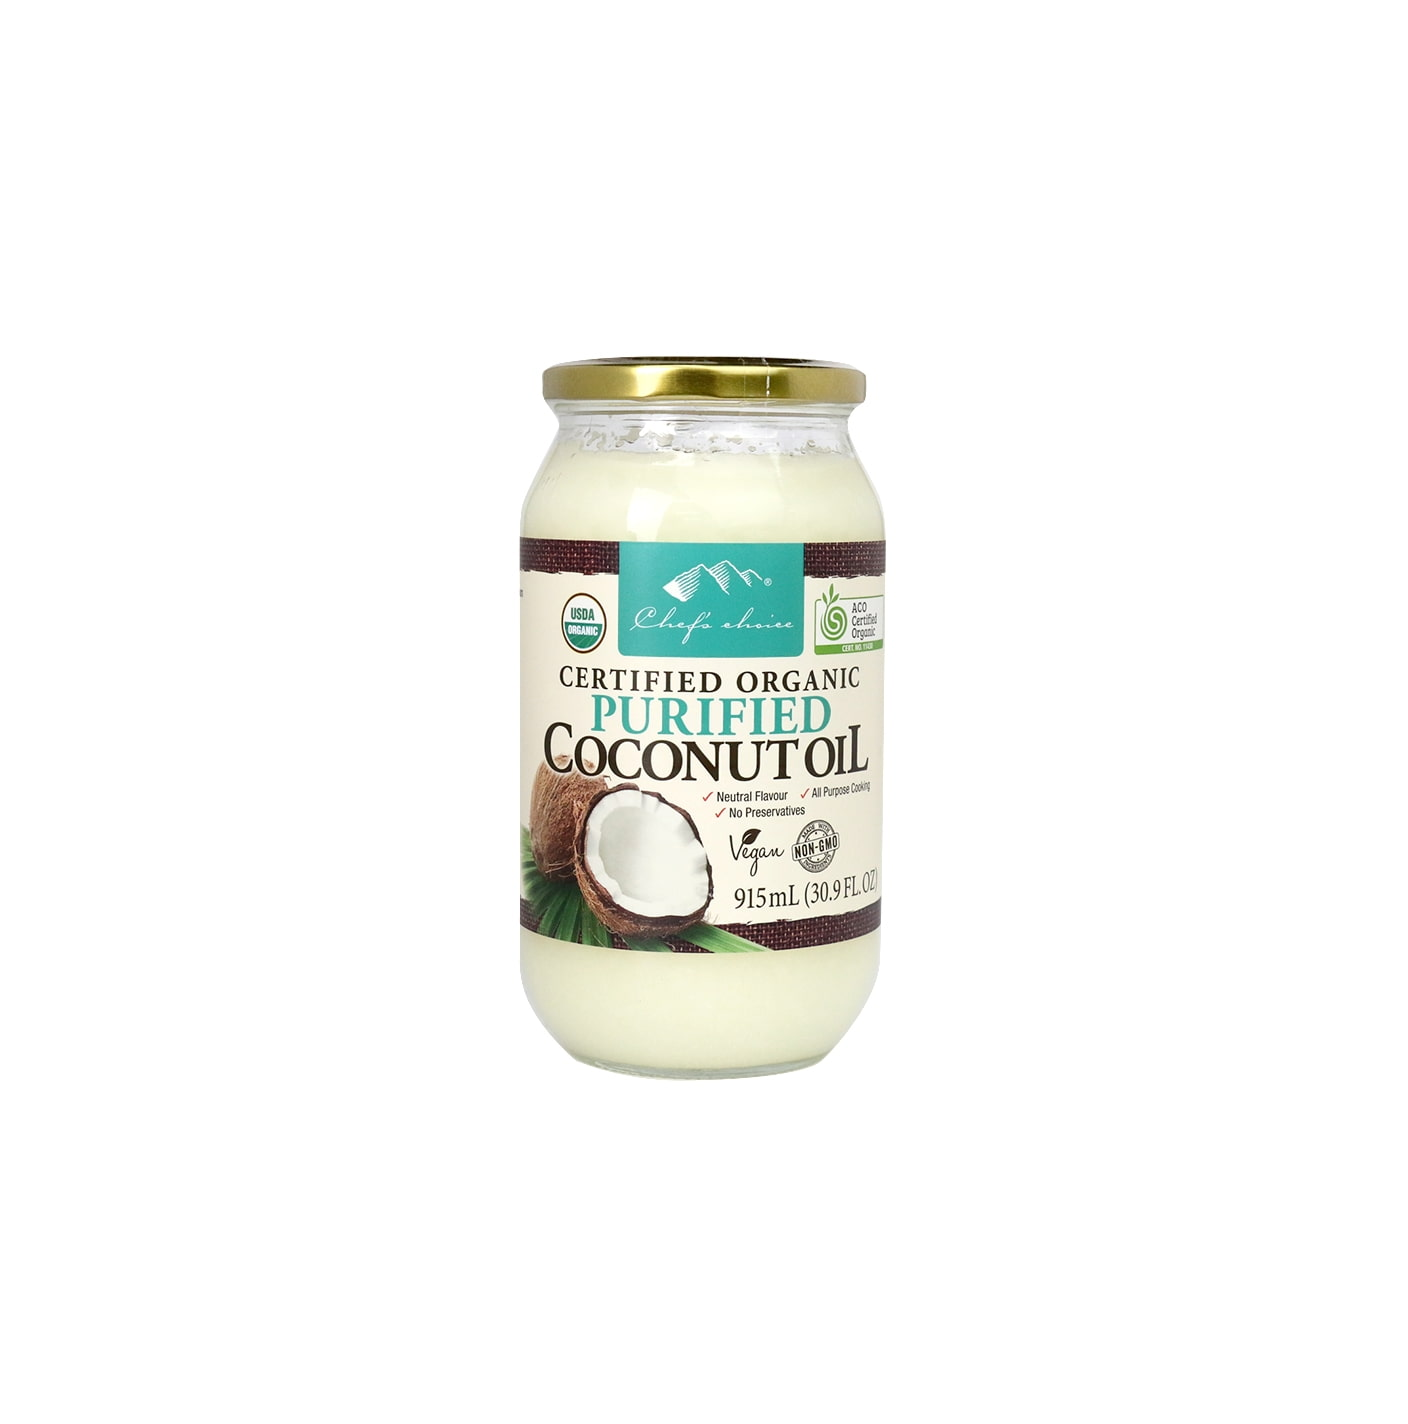 Organic Purified Coconut Oil 915mL